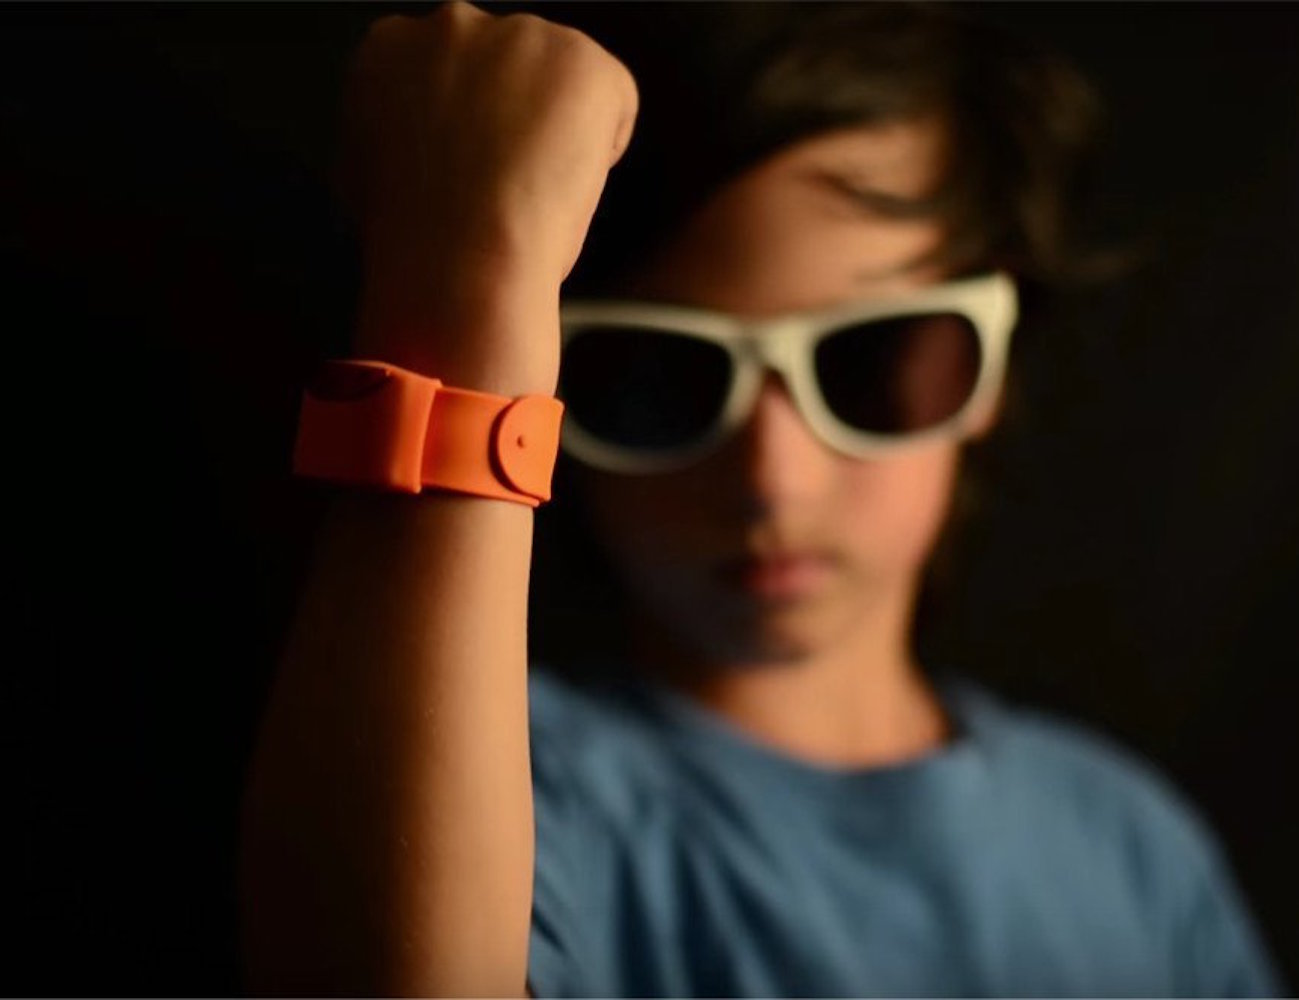 Moff+Band+%E2%80%93+The+Wearable+Smart+Toy